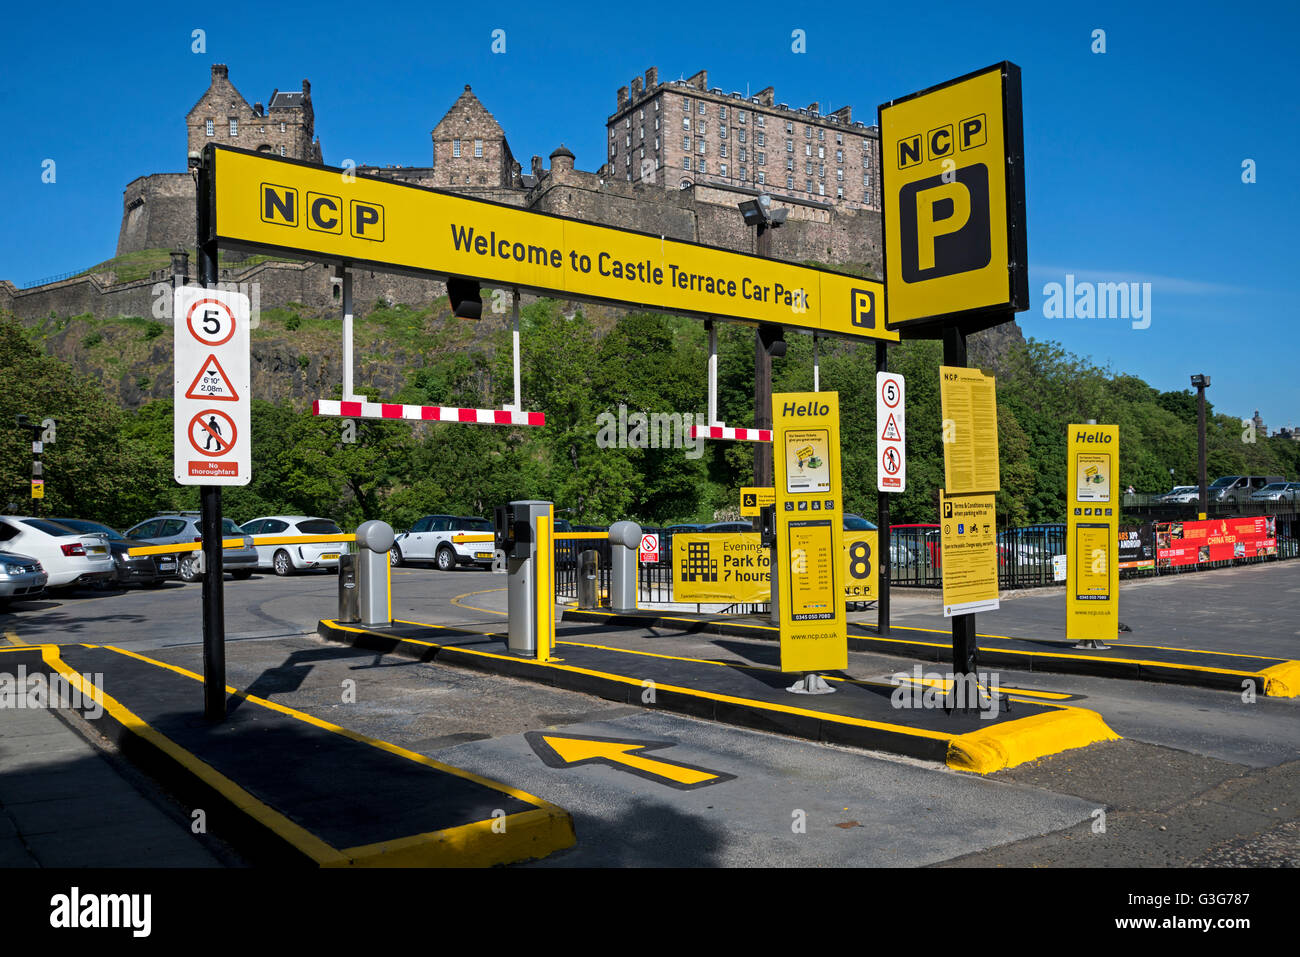 entrance-to-the-ncp-car-park-on-castle-t